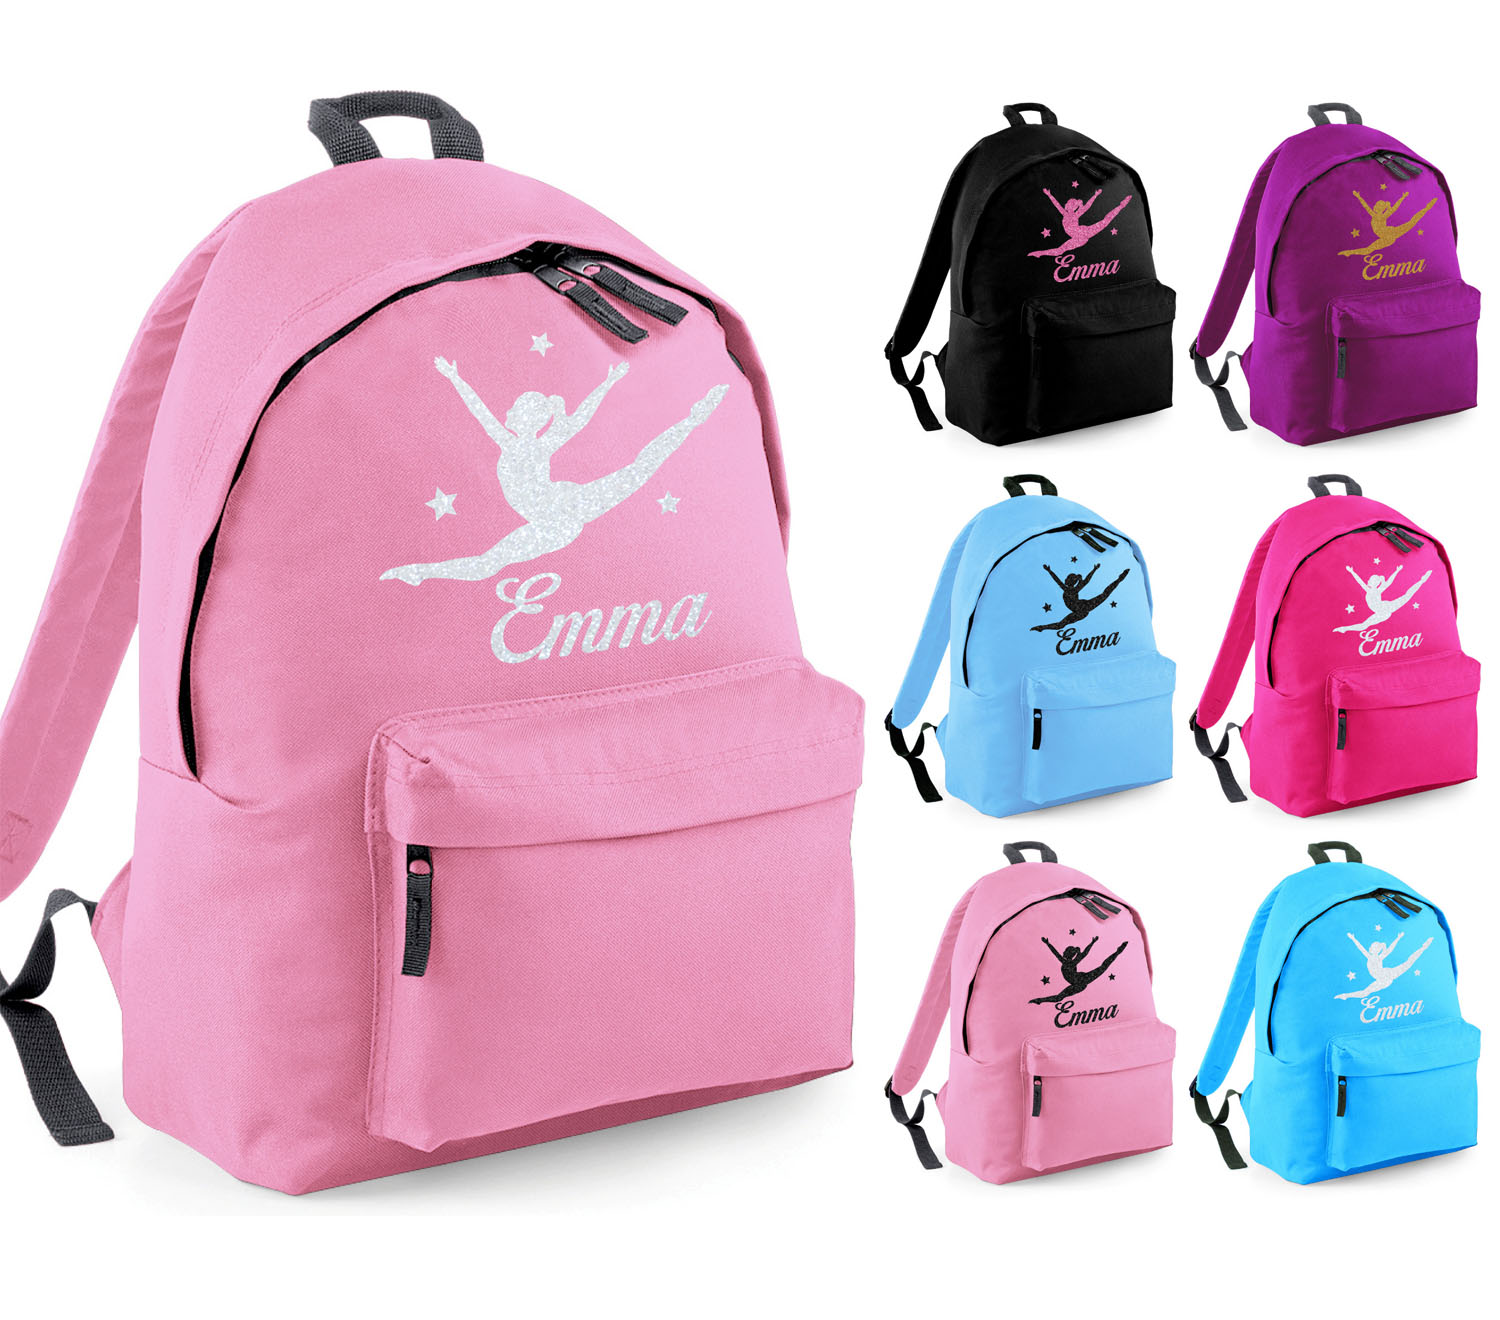 Girls Personalised Shoulder Bag for Dance Ballet Gymnastics Name Only School Bag